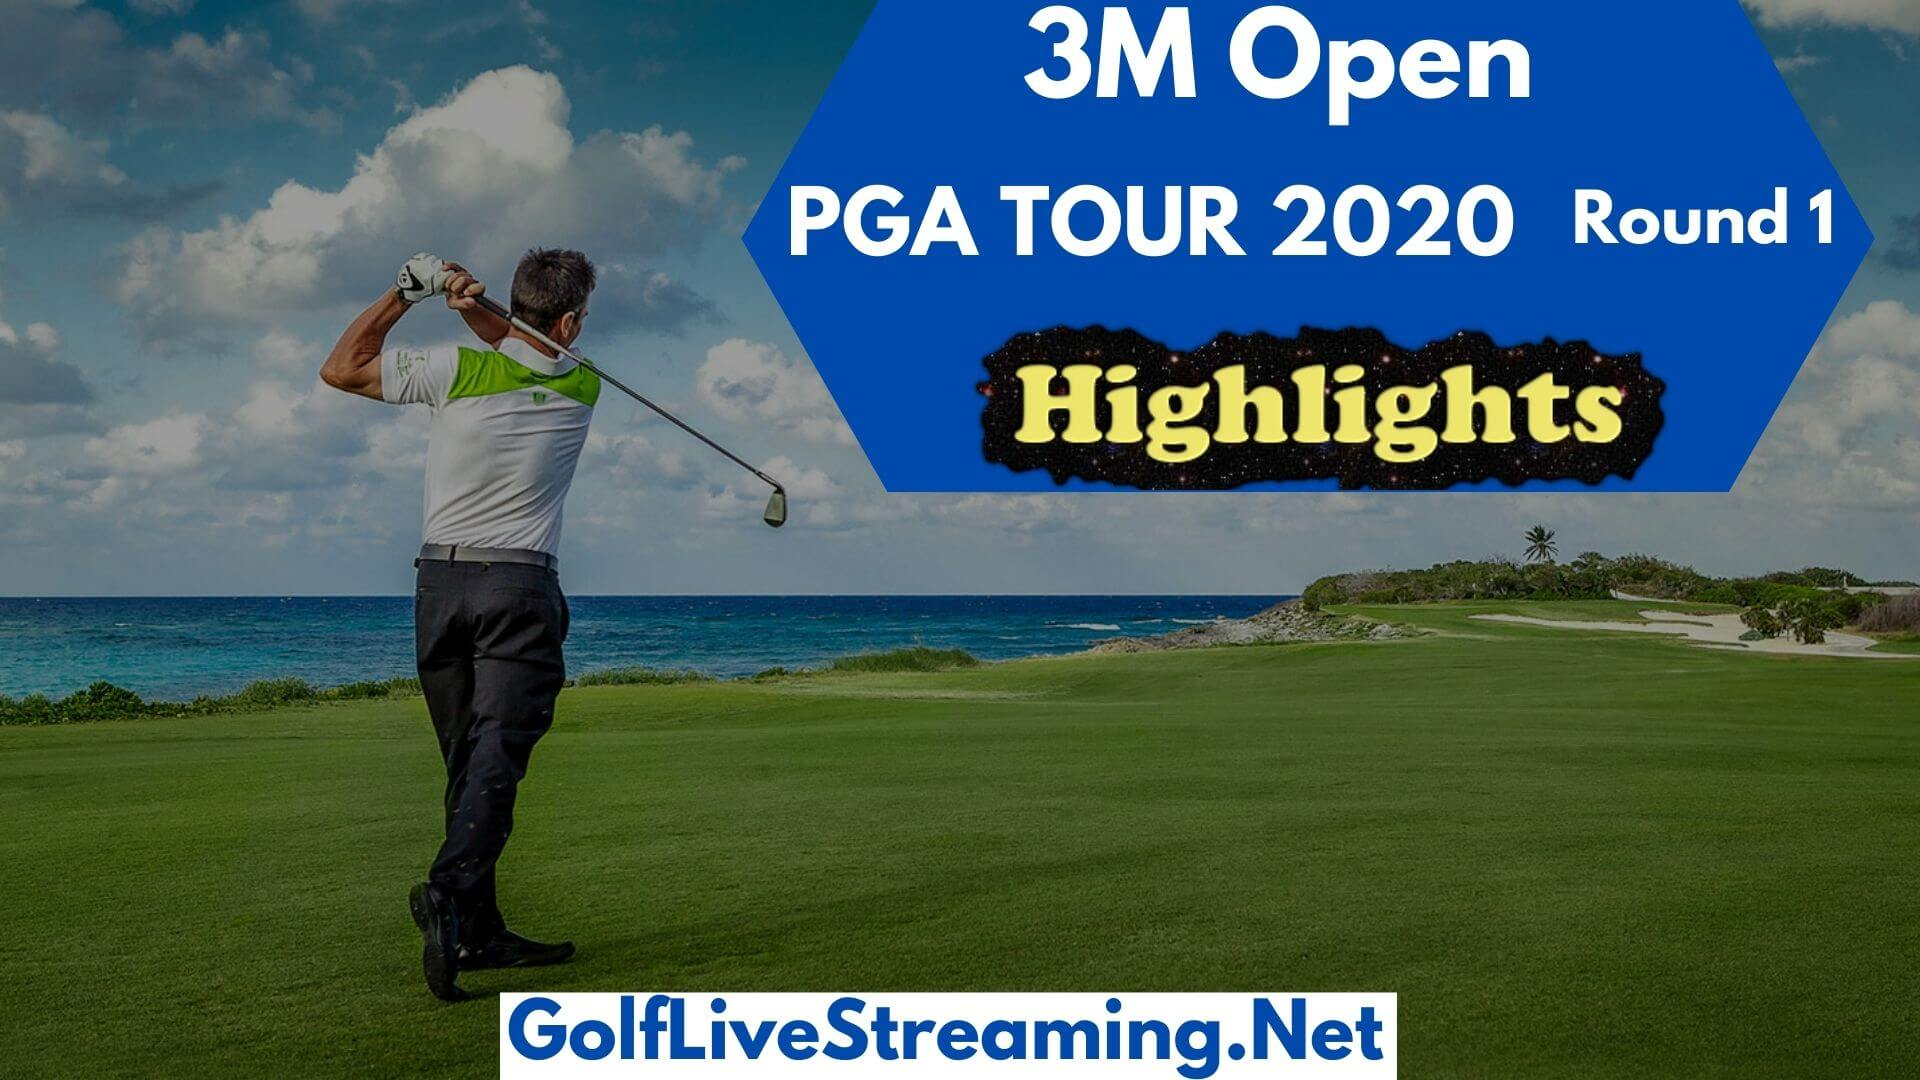 3M Open Rd 1 Highlights 2020 PGA TOUR